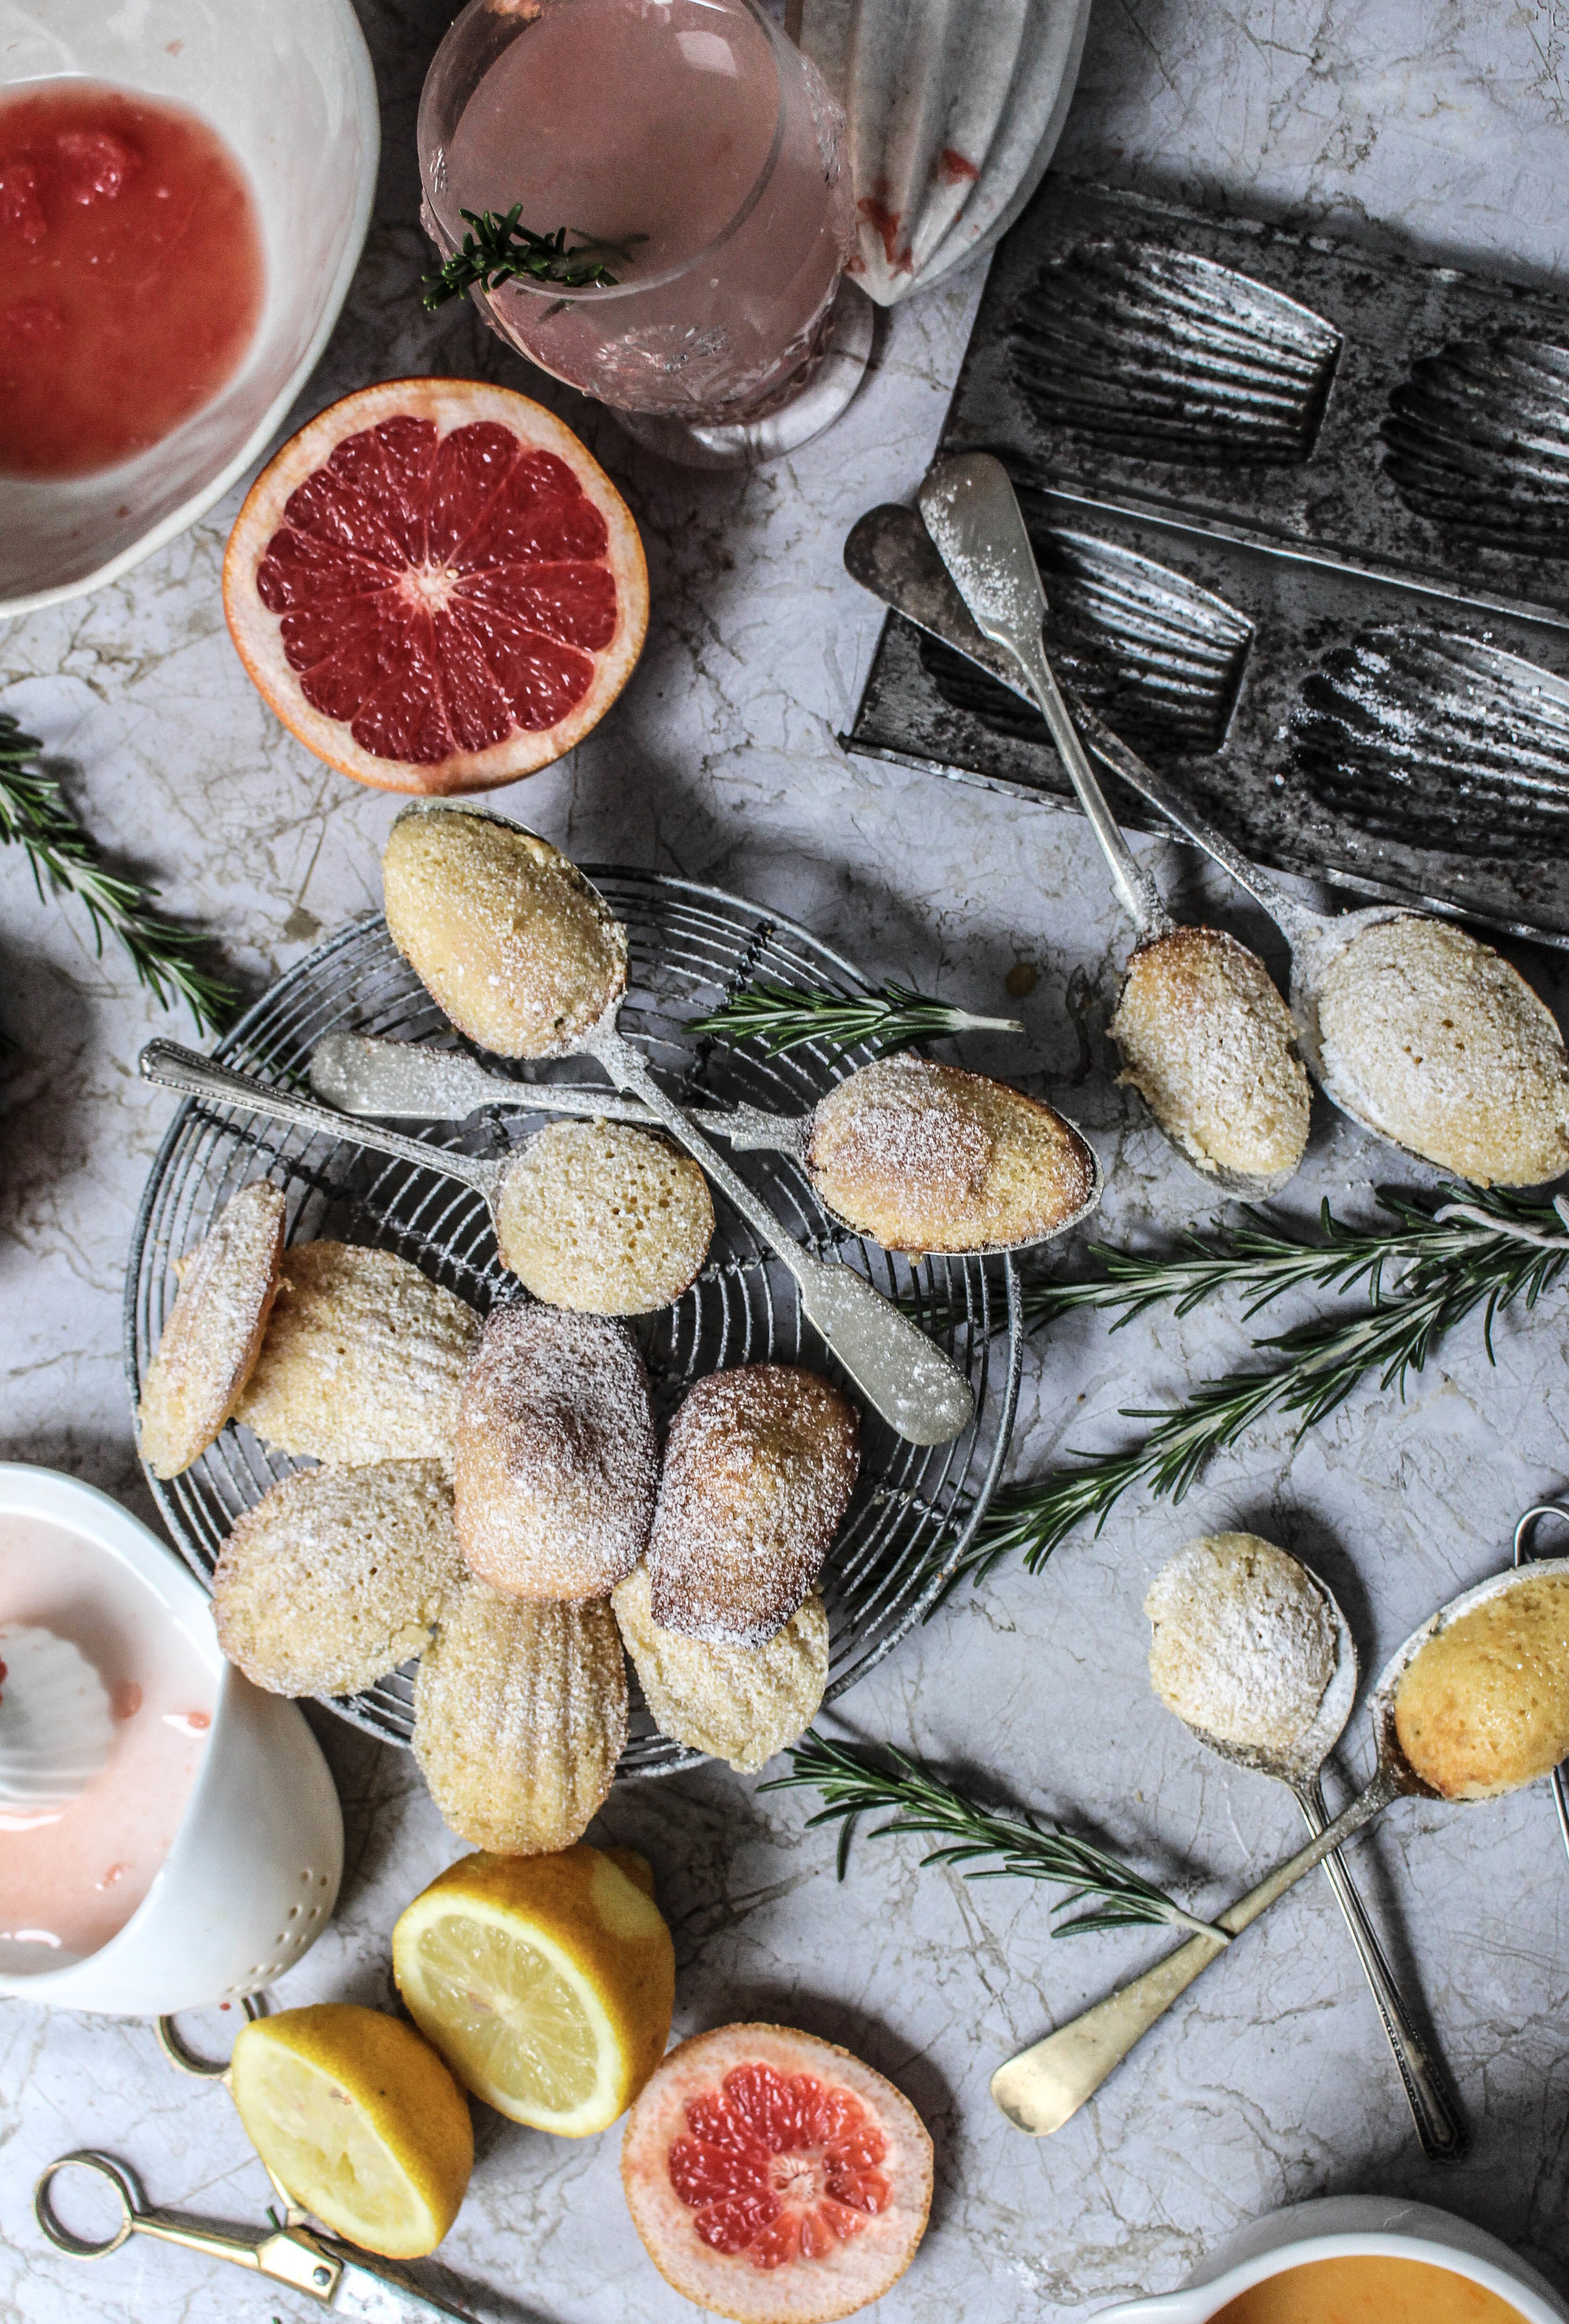 Pink-Grapefruit-and-Rosemary-Madeleines-a-guest-post-from-Twigg-Studios.jpg